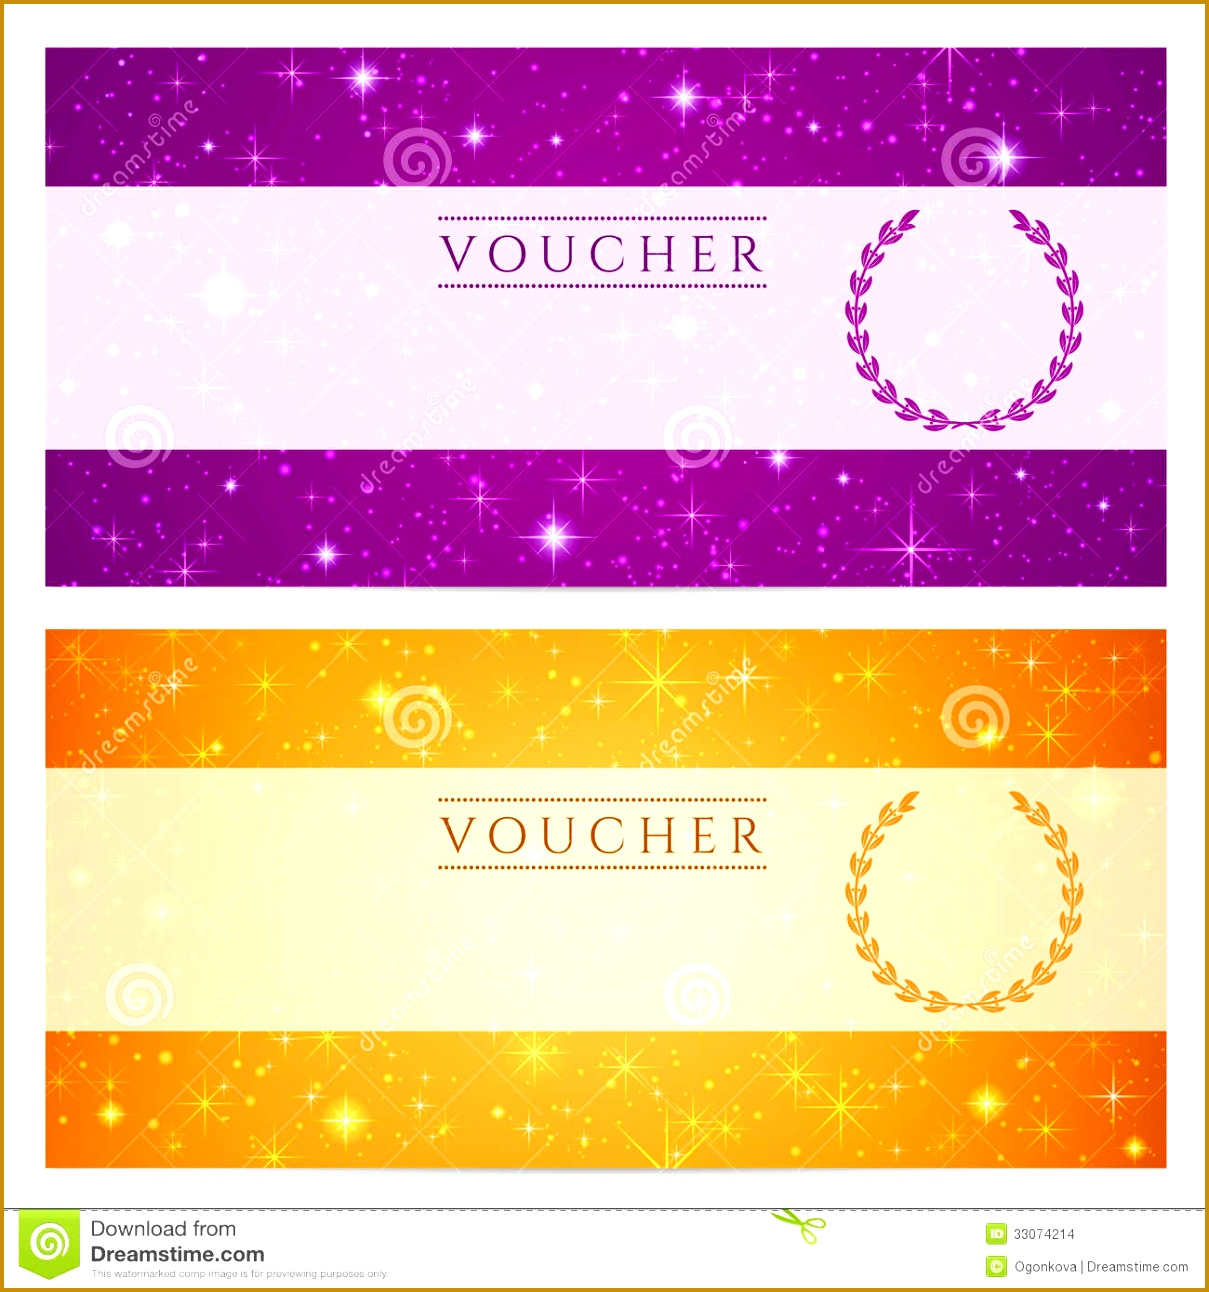 stock images t certificate voucher coupon template stars sparkling twinkling night sky background design invitation banner ticket image 12091292